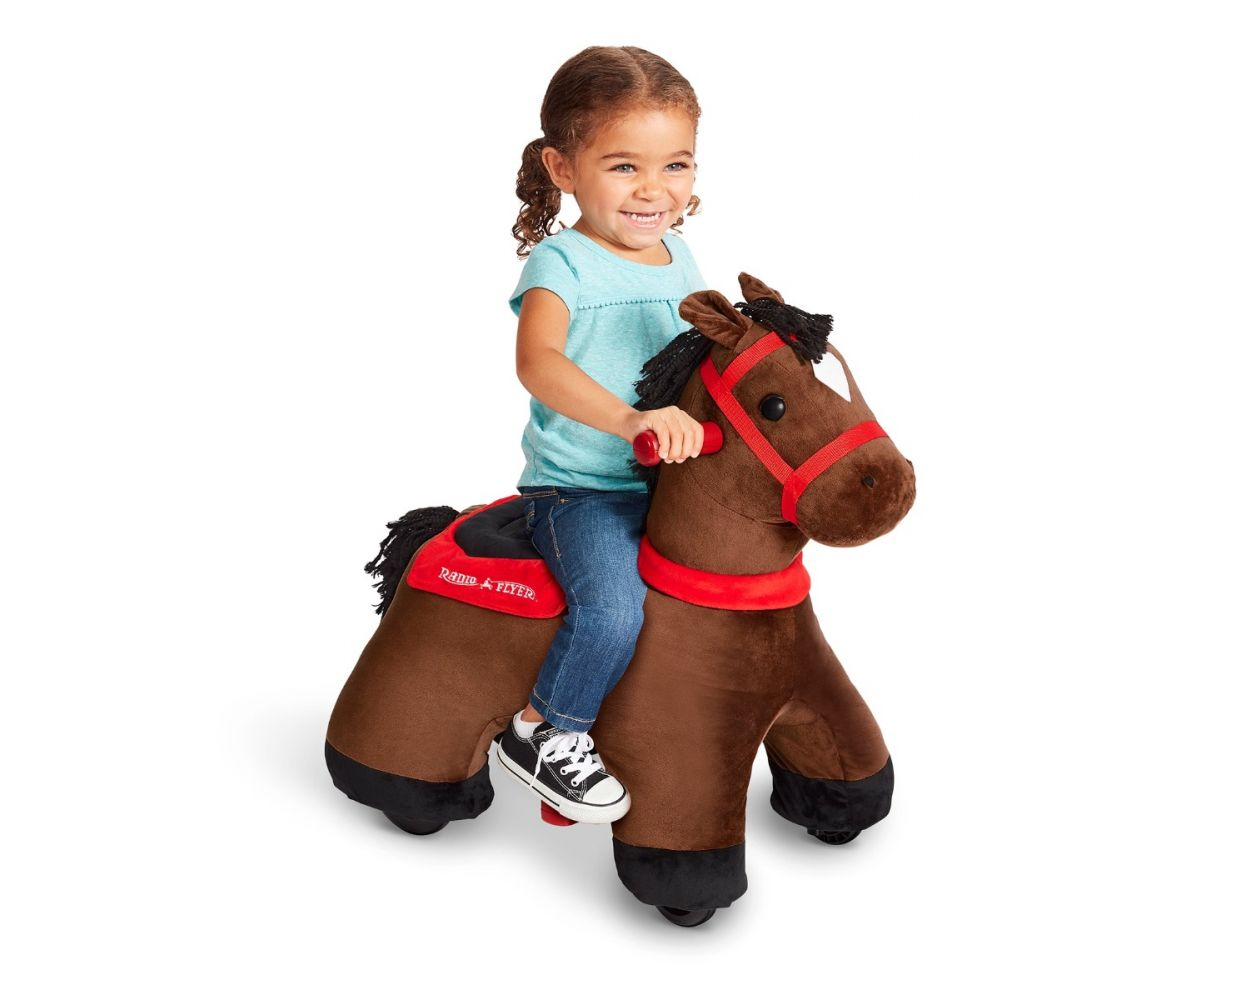 Lightning: Electric Ride-On Horse